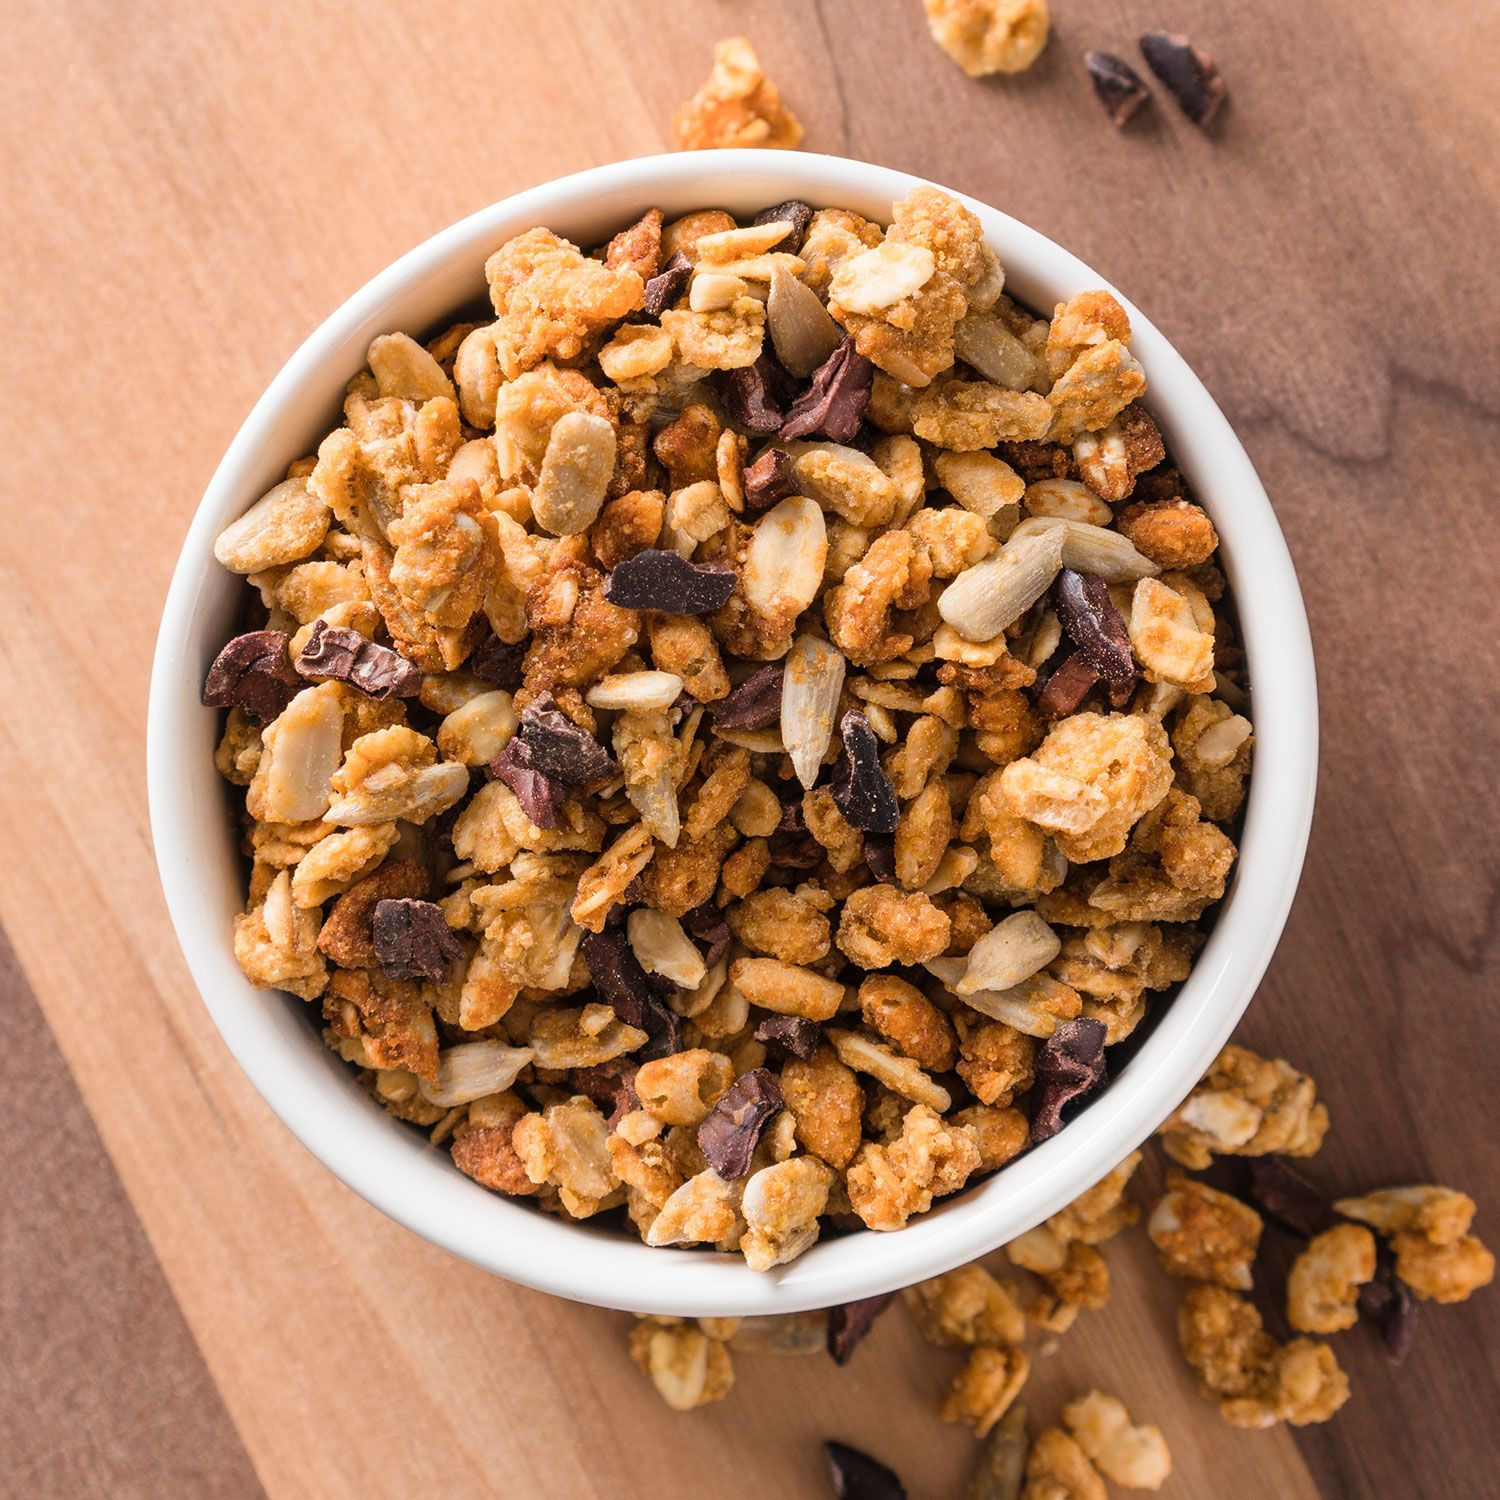 Ginger spice granola organic granola with chocolate in it